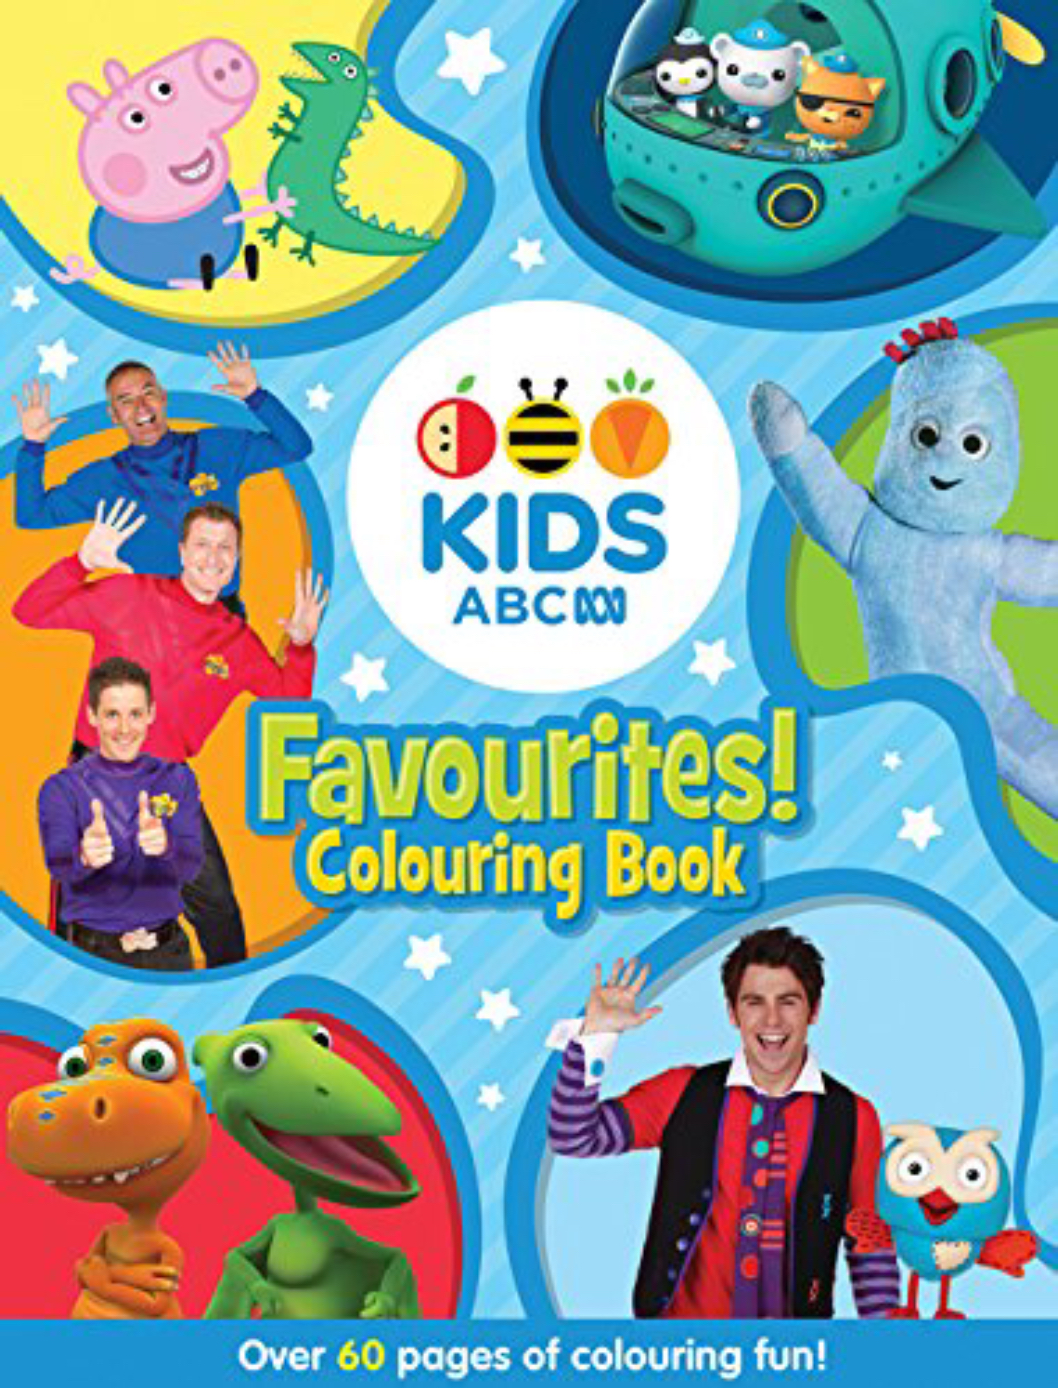 ABC KIDS Favourites! Colouring Book (blue book)